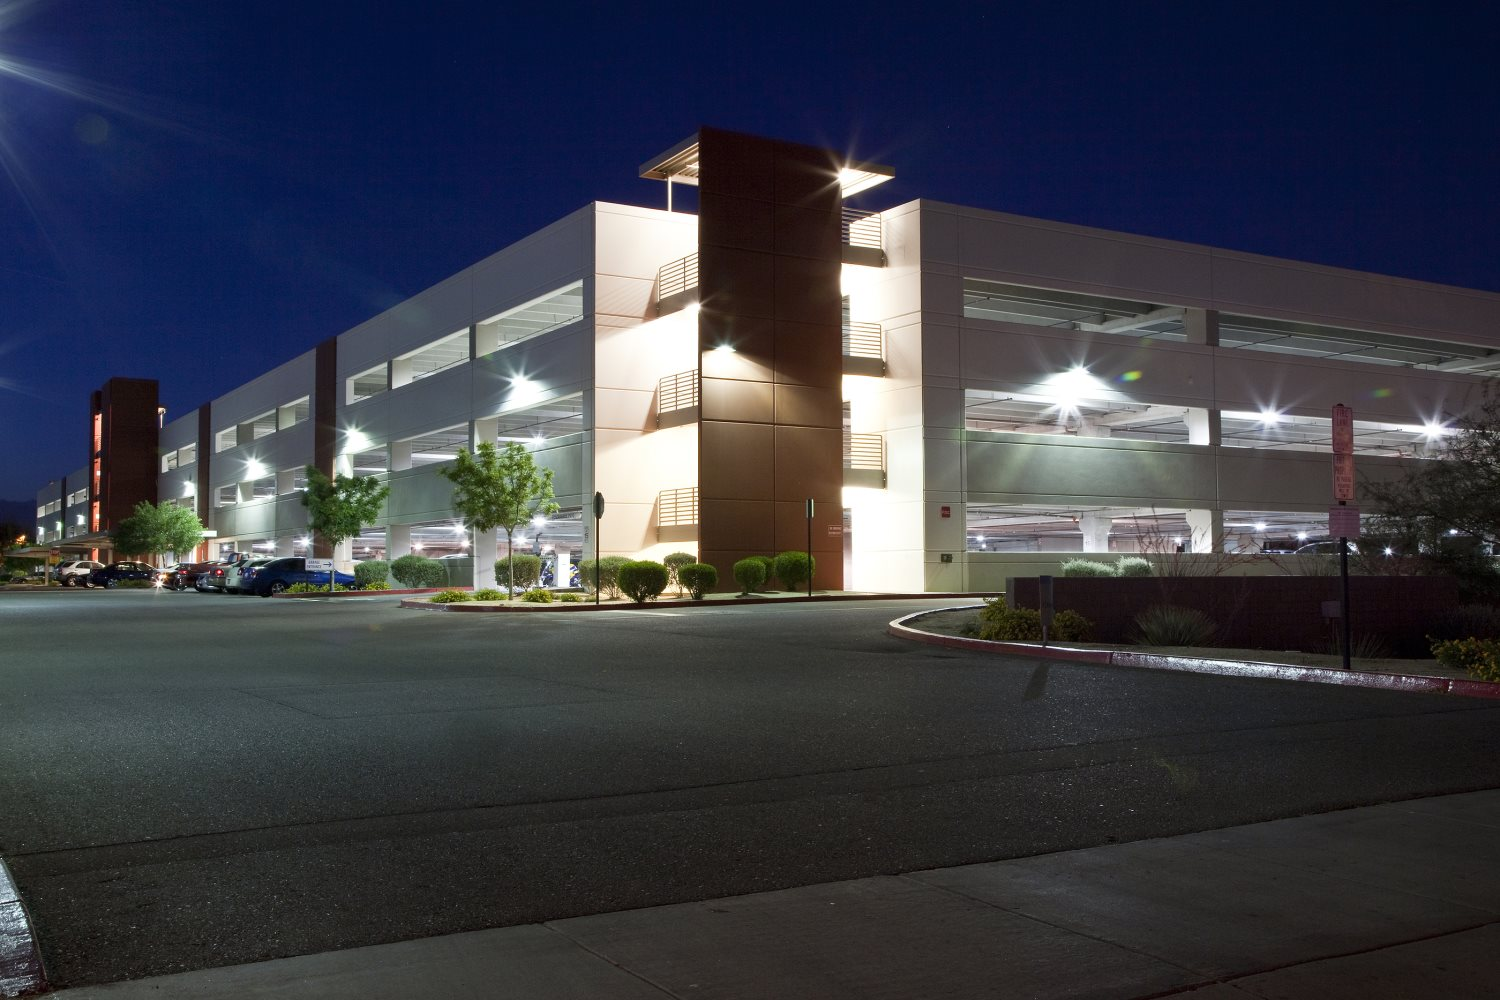 bigstock-Parking-Garage-At-Night-29526944.jpg